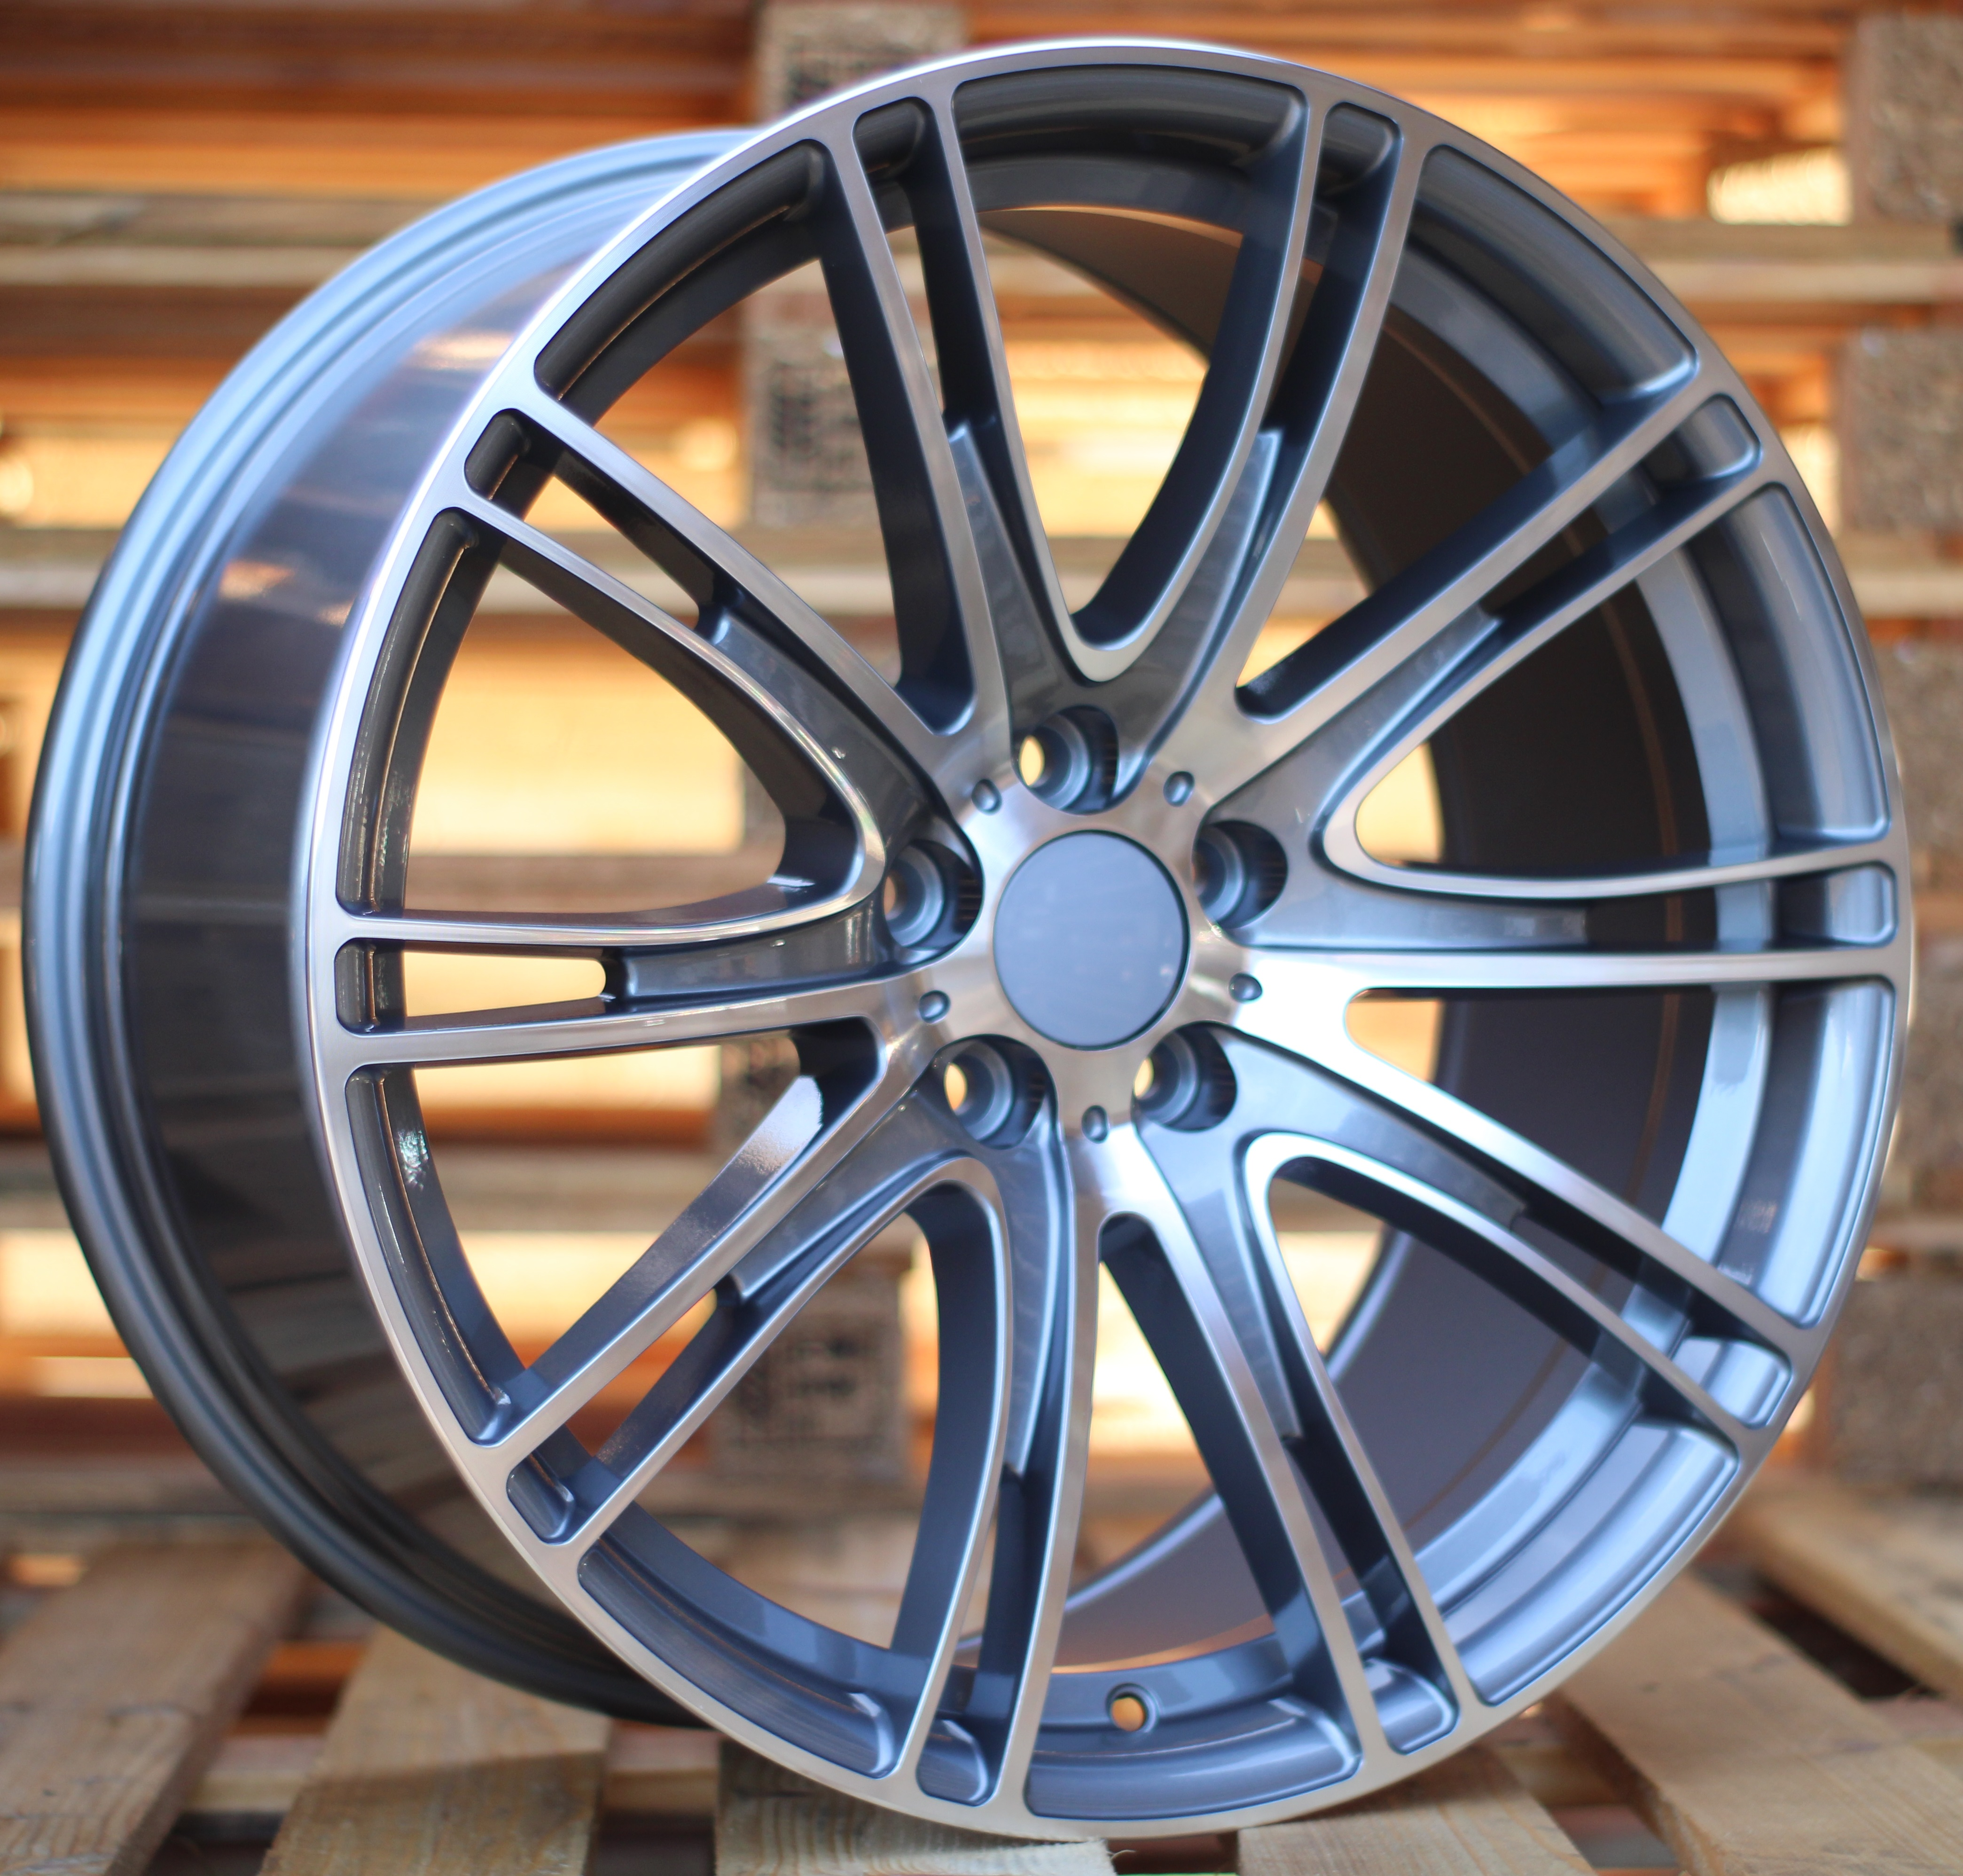 B19X9.5 5x112 ET39 66.6 BY599 (LJ599) MG (G12/MF) (Rear+Front) RWR BM(K7) 9.5x19 ET35 5x112